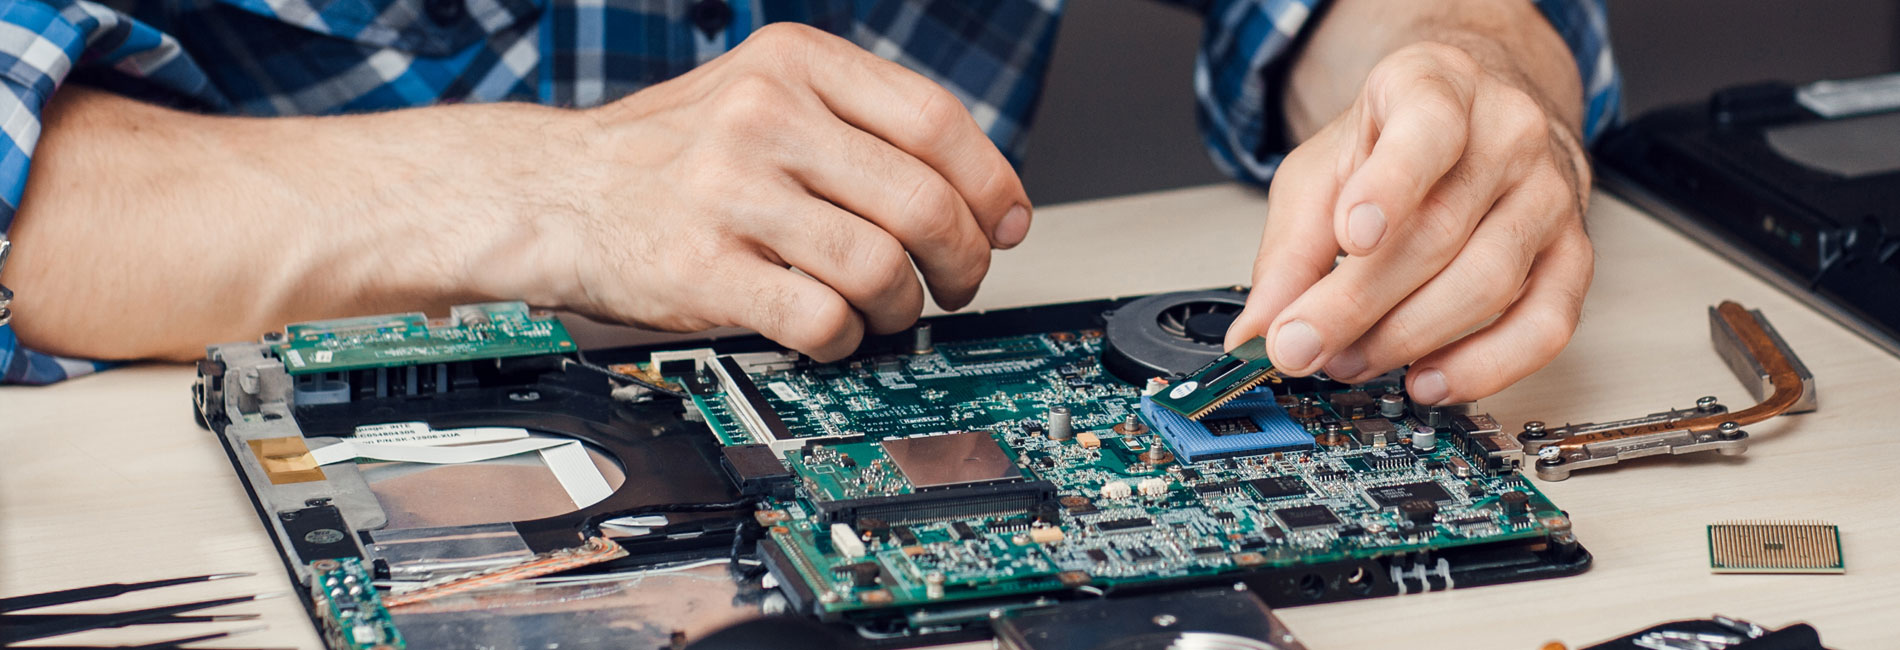 Technician with Circuit Board